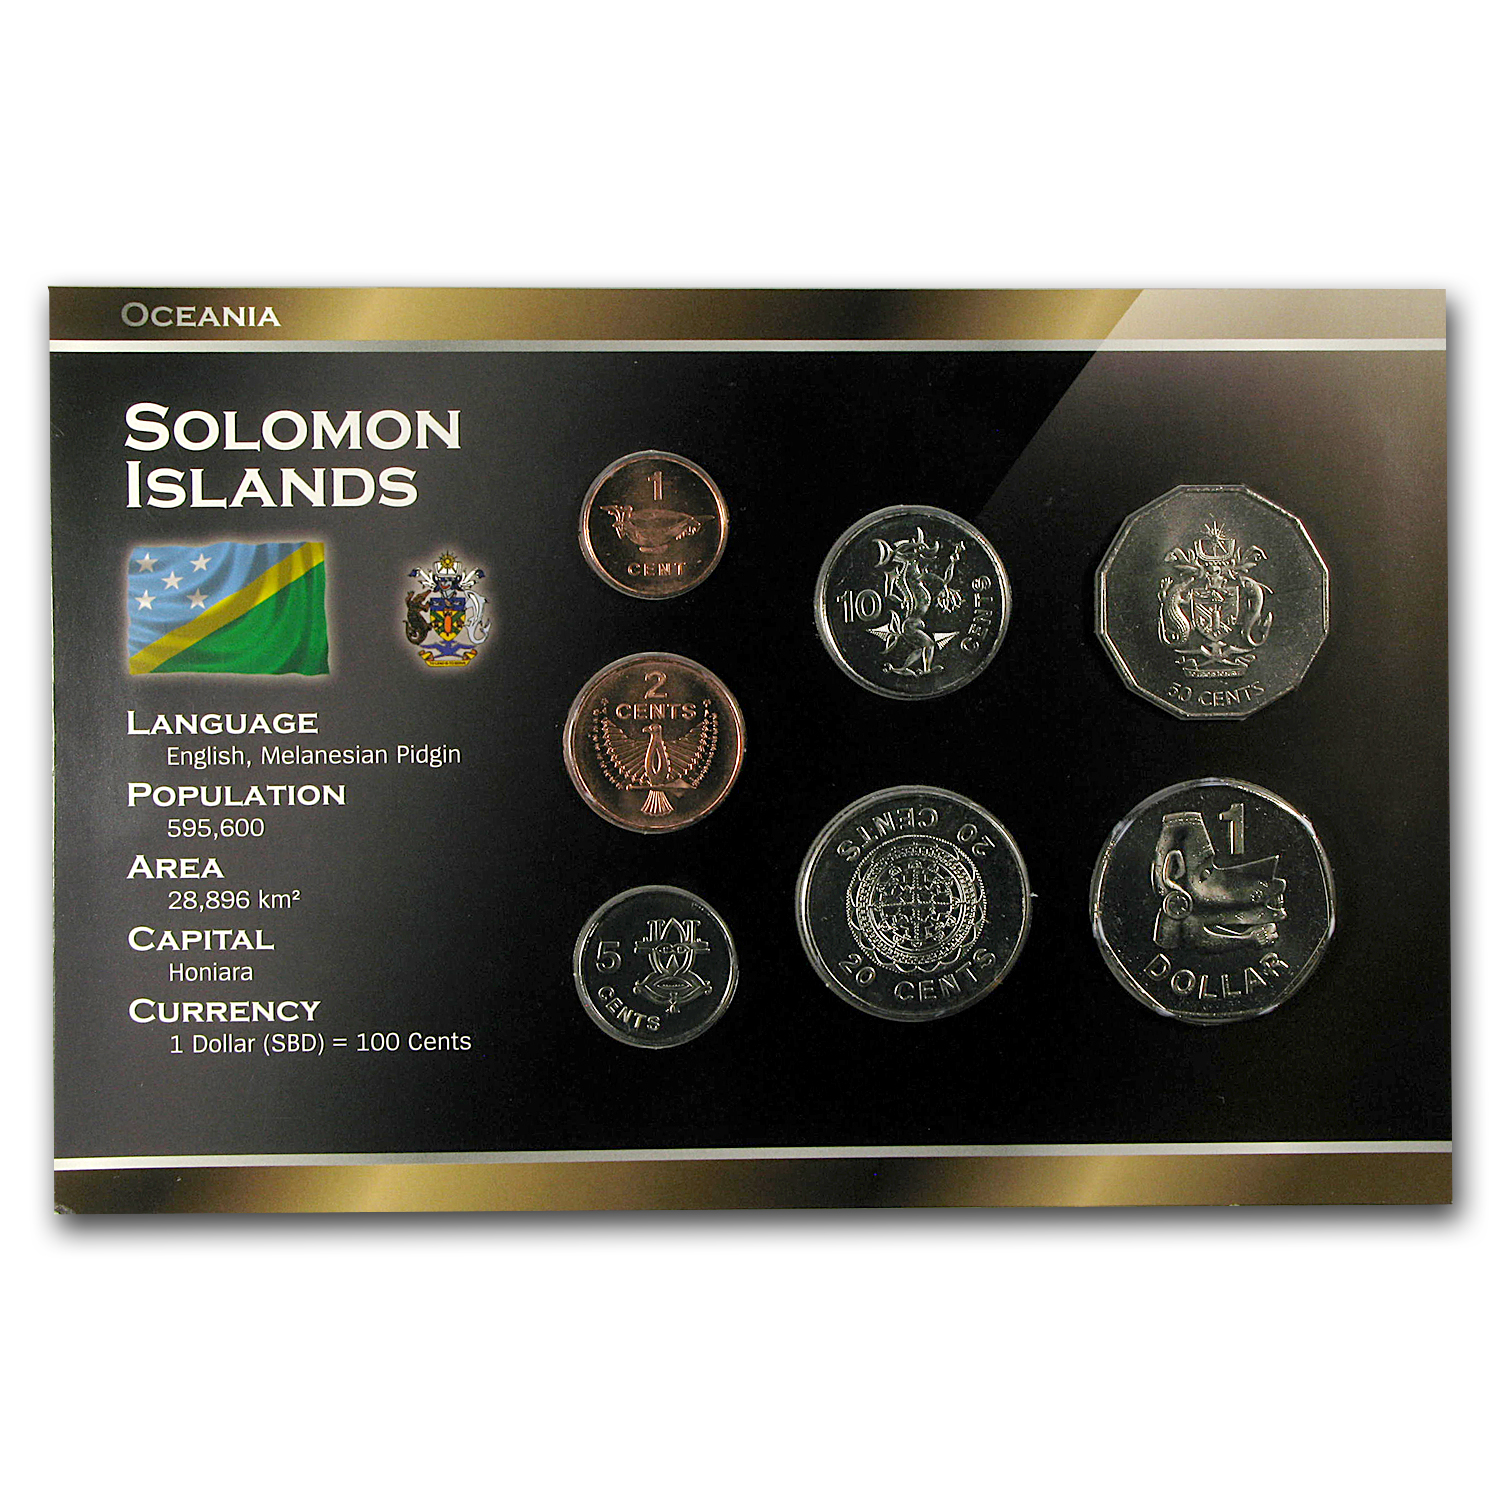 Solomon Islands Coin Set - 7 Coins